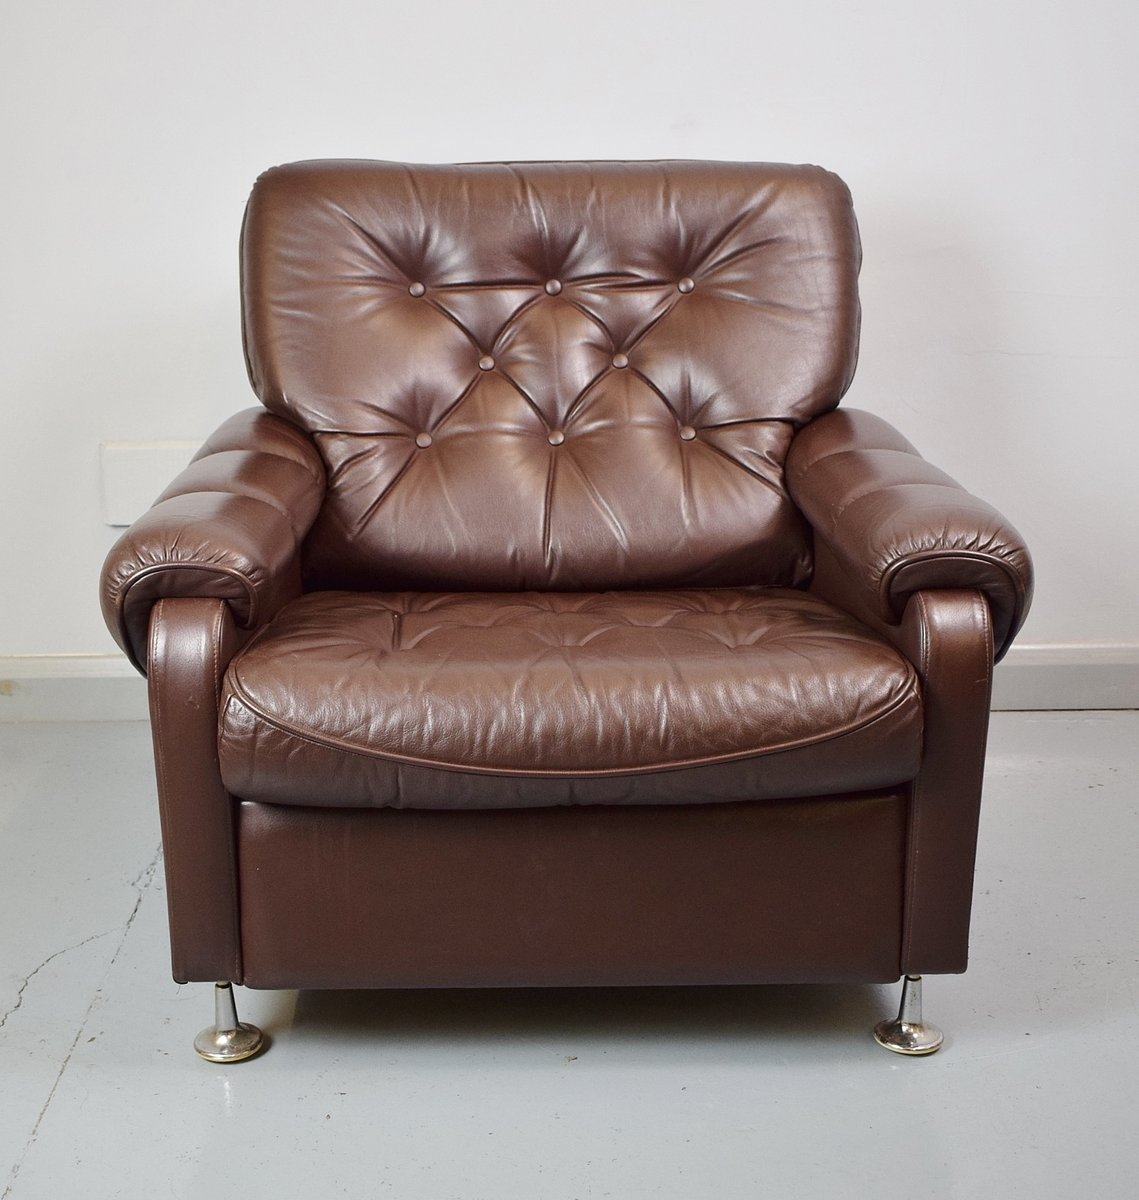 Ingolf Chair Brown Black: Vintage Dark Brown Leather Club Chair, 1970s For Sale At